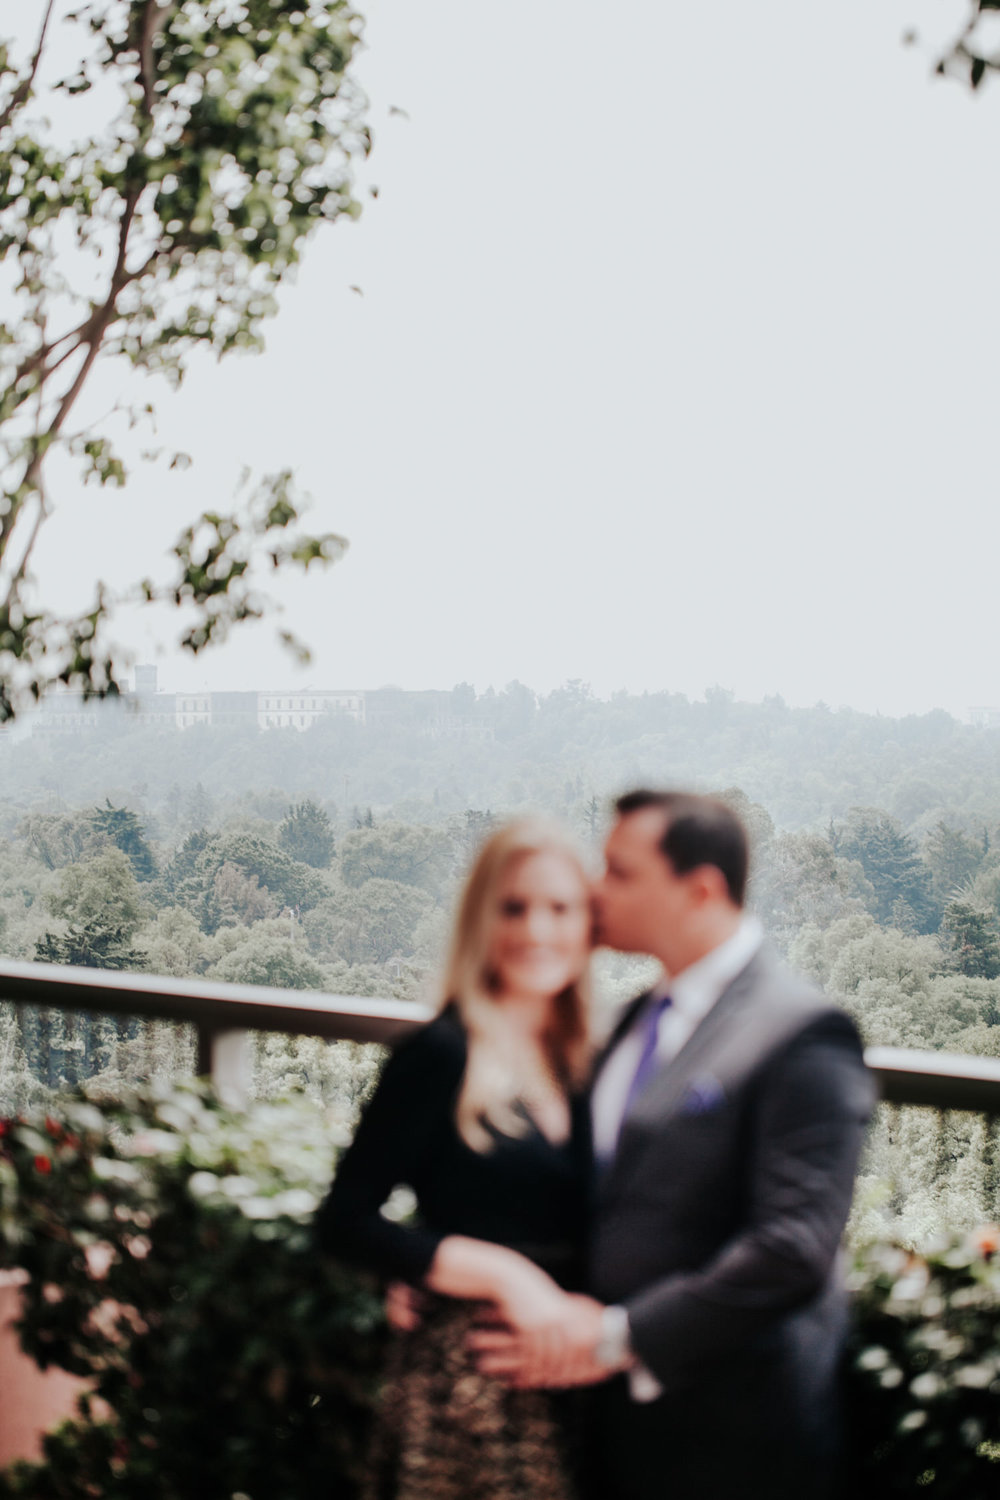 fotografo-mexico-df-boda-wedding-jw-marriot-hotel-polanco-chapultepec-pierce-7.jpg